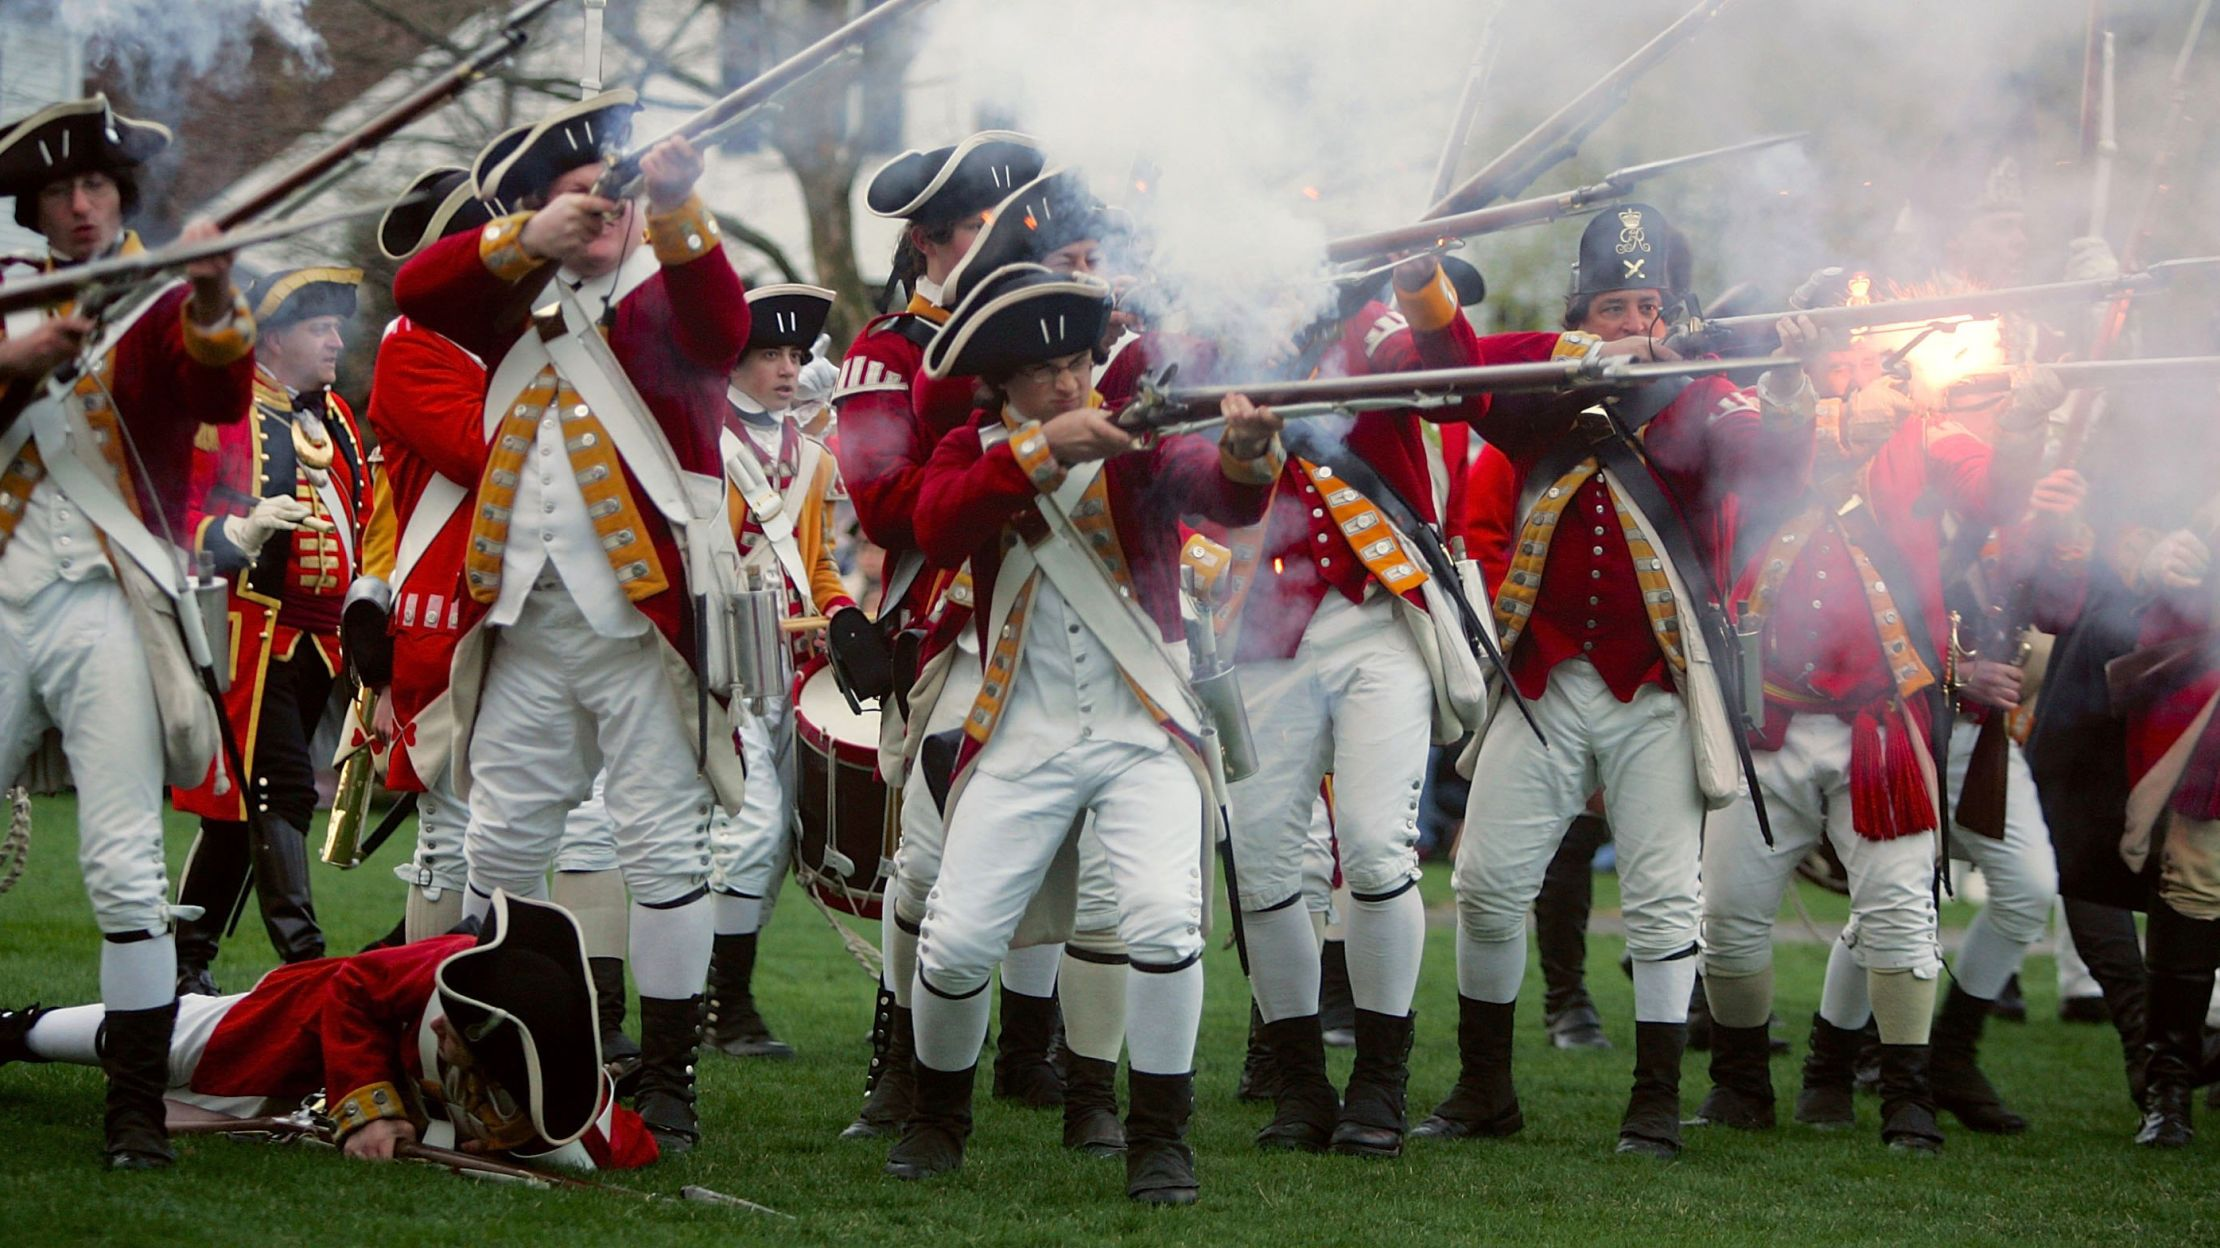 When Did Americans Lose Their British Accents?